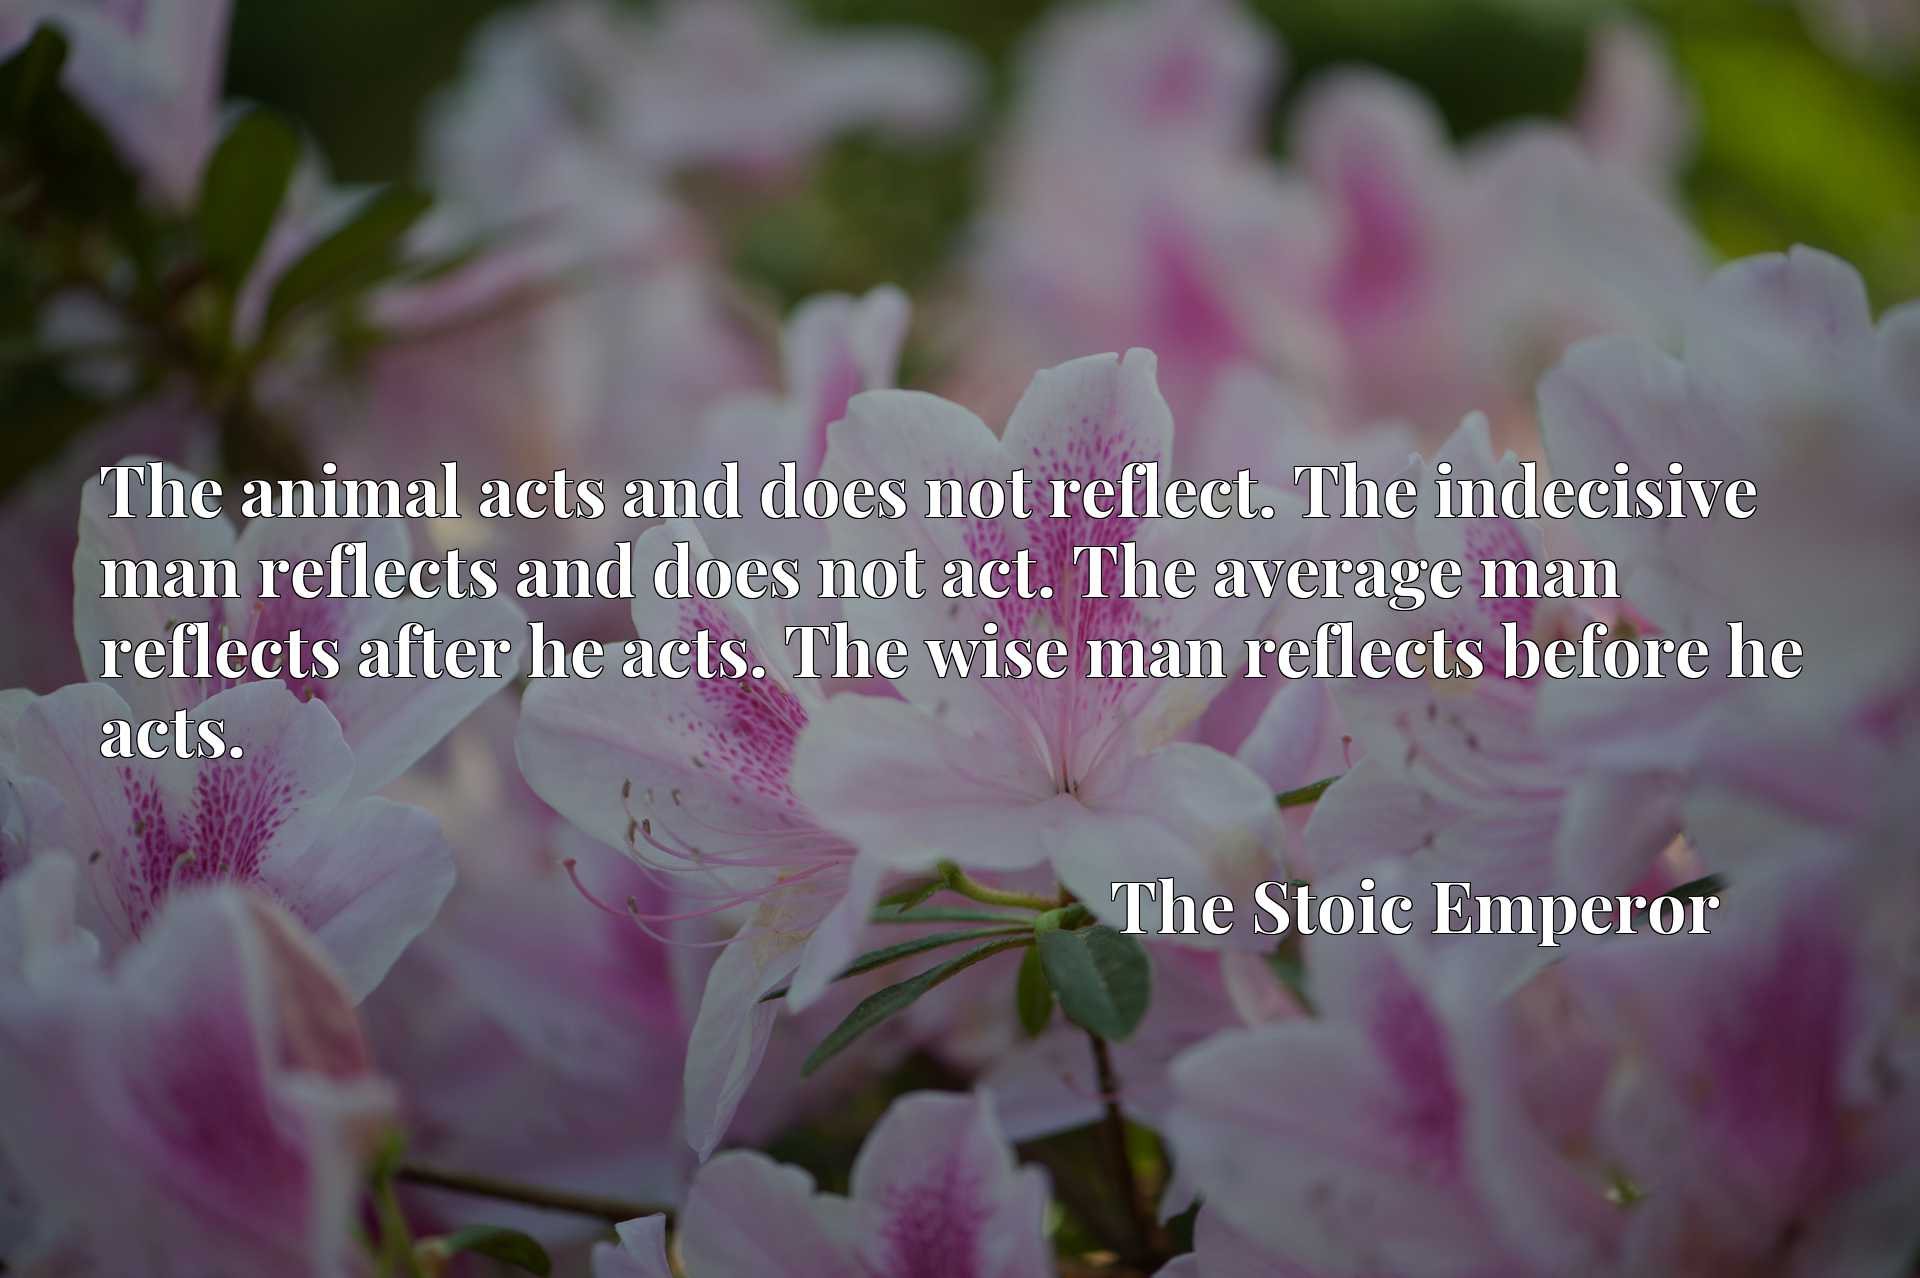 The animal acts and does not reflect. The indecisive man reflects and does not act. The average man reflects after he acts. The wise man reflects before he acts.